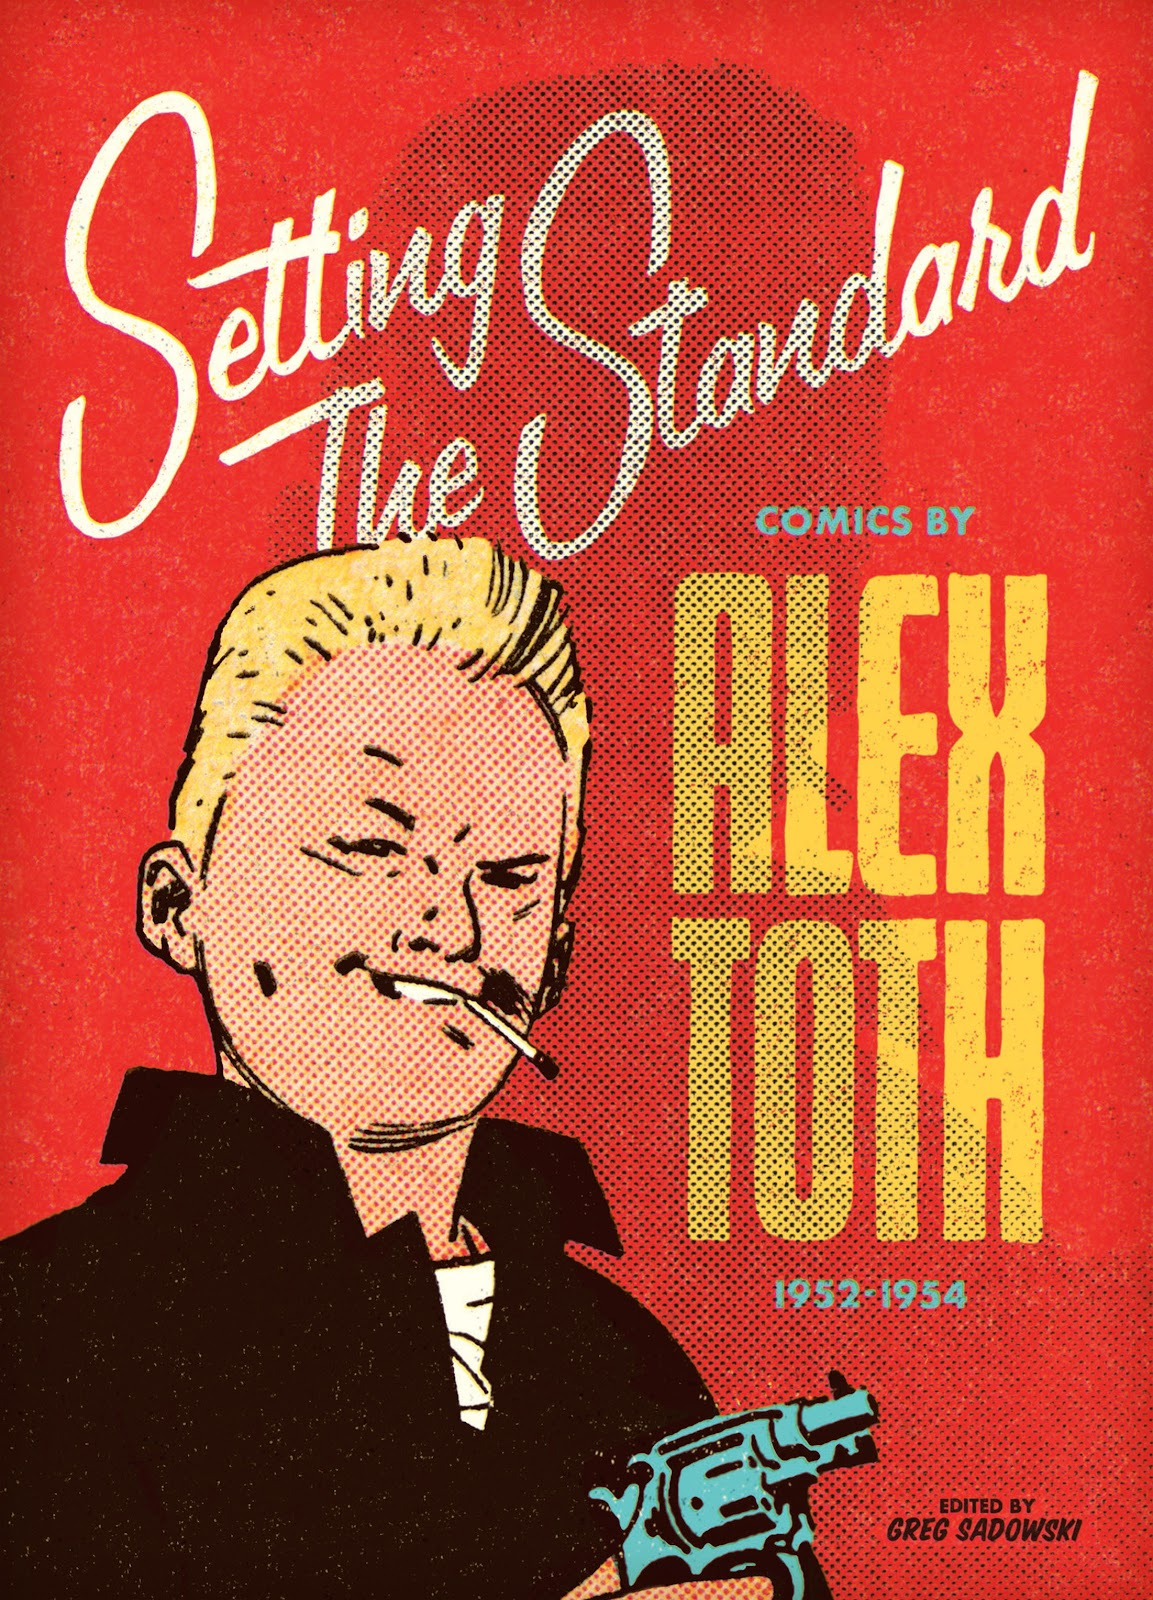 Read online Setting the Standard: Comics by Alex Toth 1952-1954 comic -  Issue # TPB (Part 1) - 1